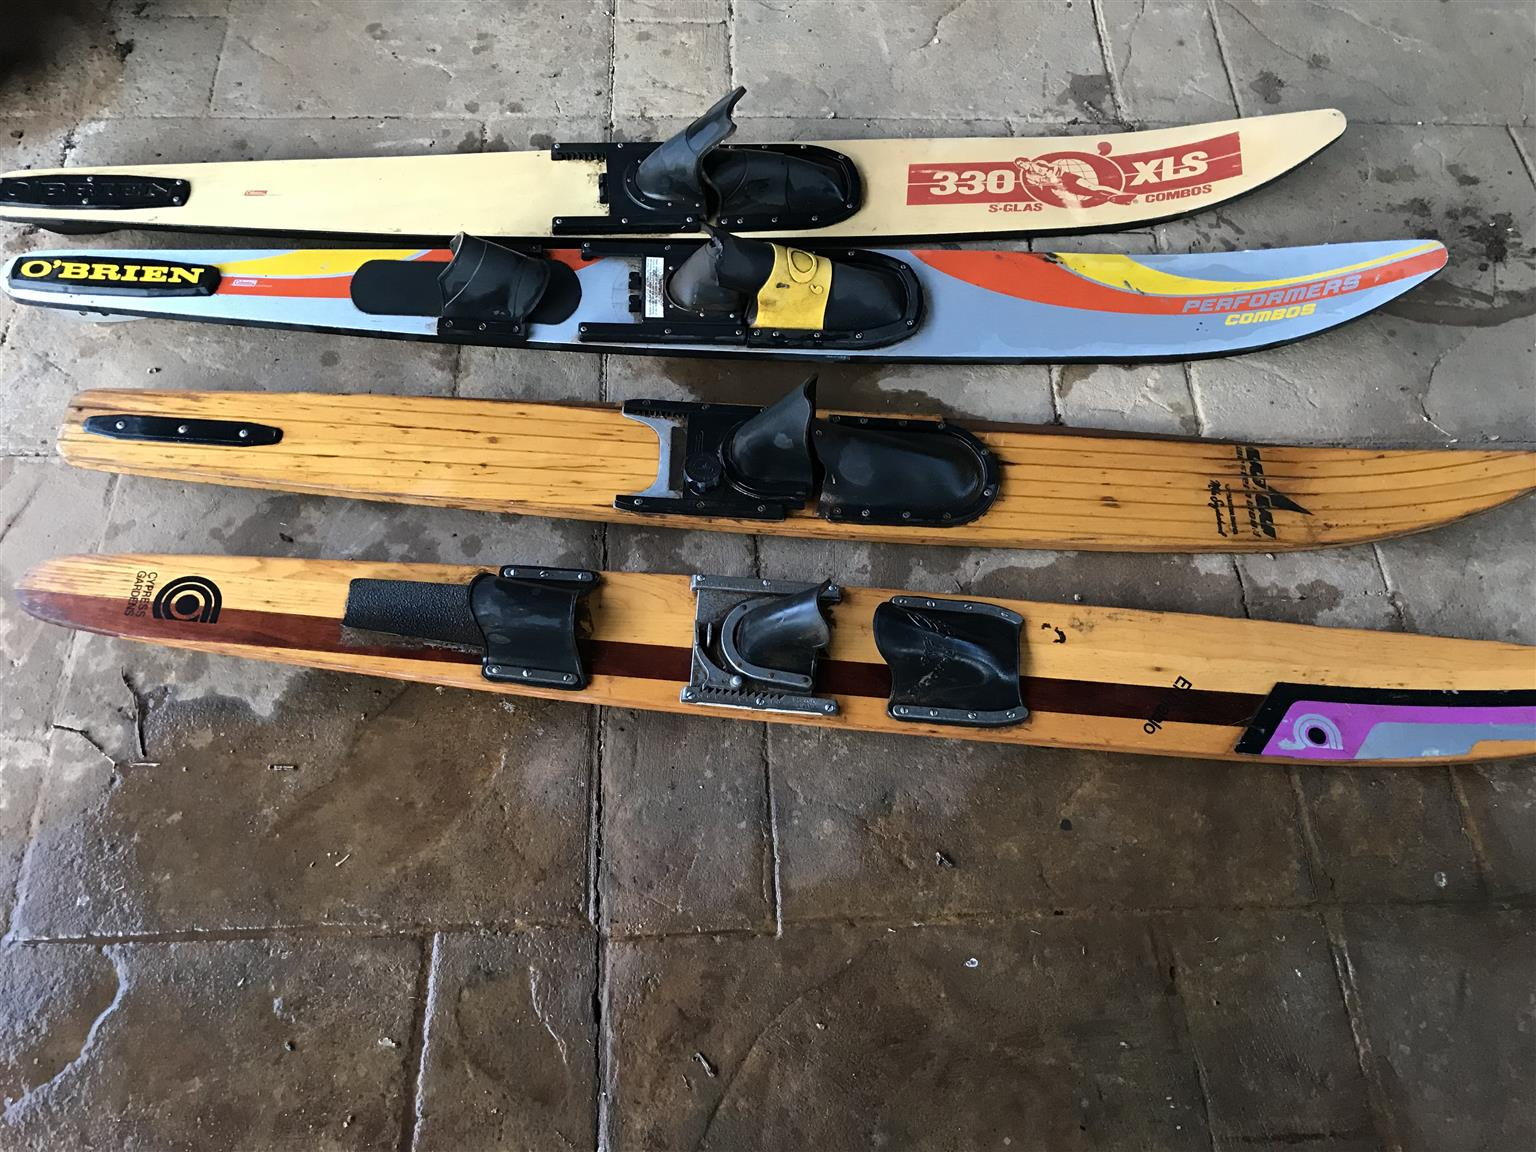 Phoenix Pantom Ski boat and Hammer Head Rubber duck with two trailers and exctras